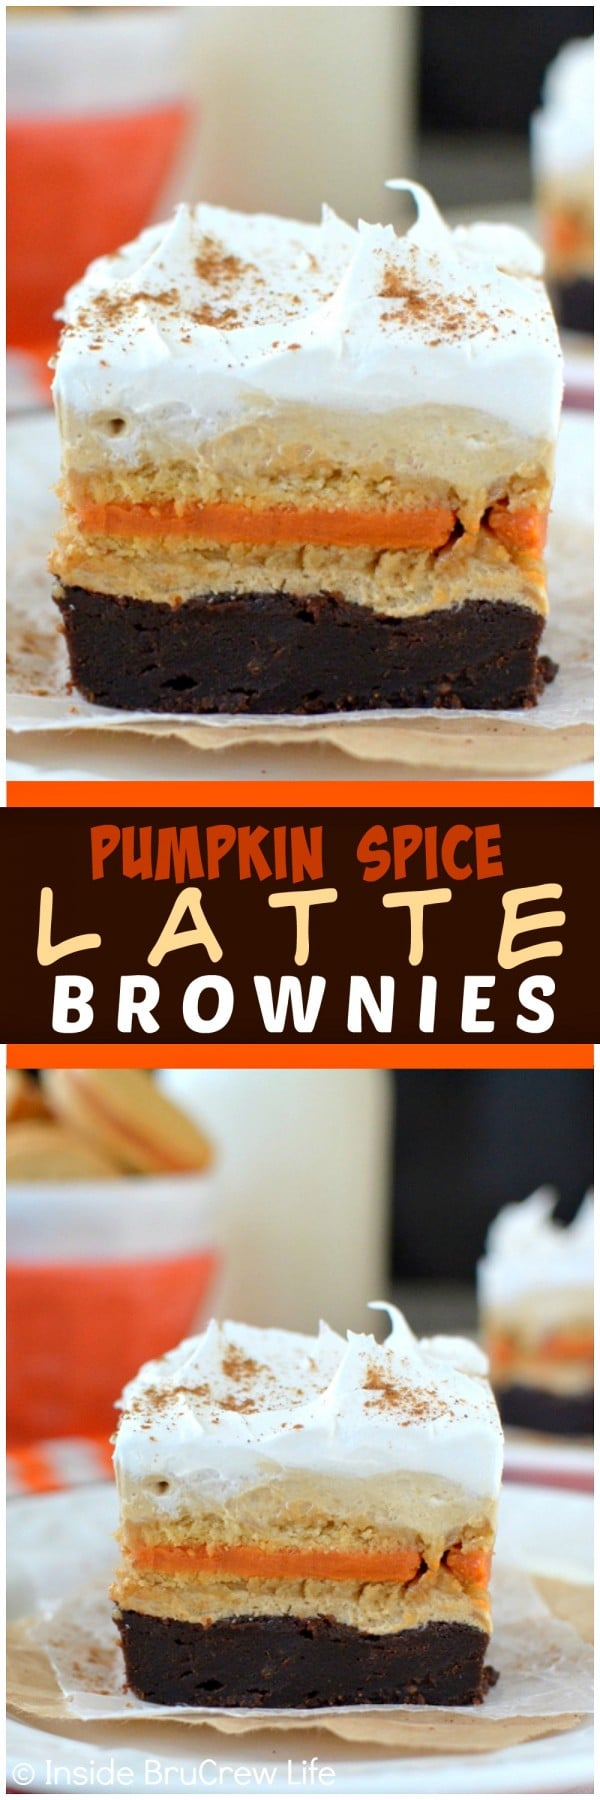 Pumpkin Spice Latte Brownies - layers of fudge brownies, cookies, & no bake coffee cheesecake make this a fun fall dessert. Great recipe for parties!